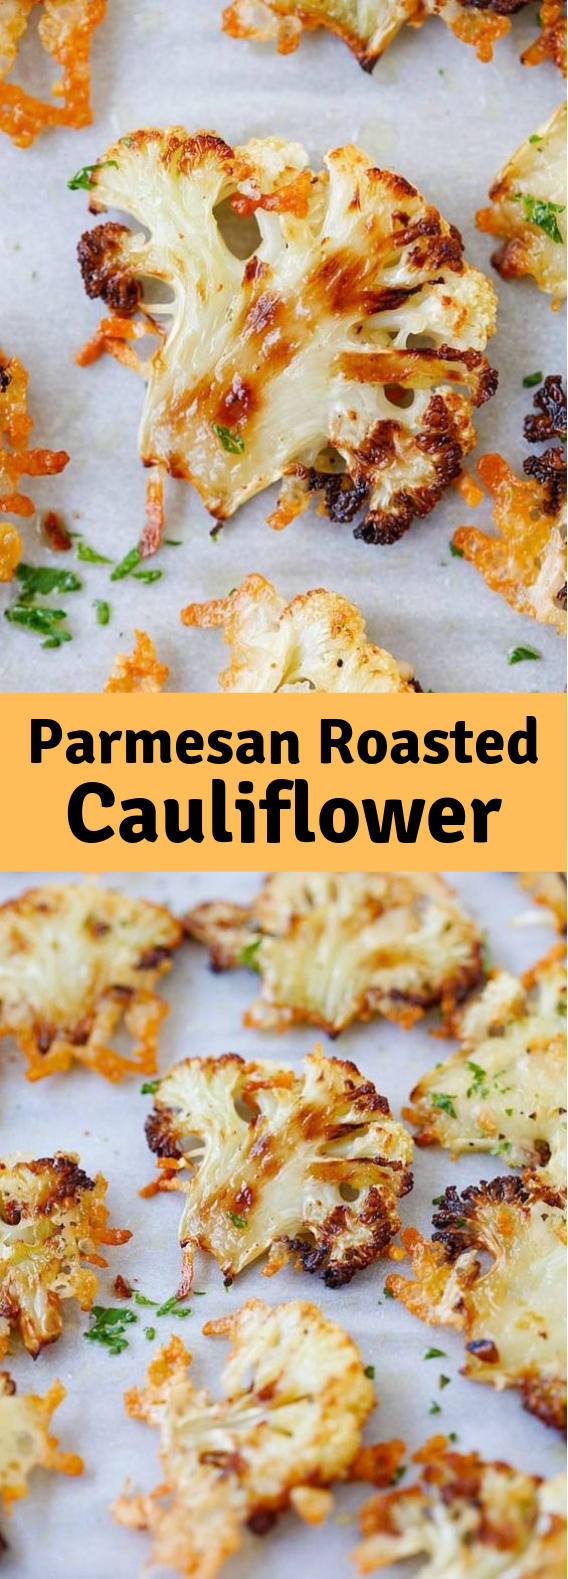 Parmesan-Roasted Cauliflower #Parmesan #Cauliflower